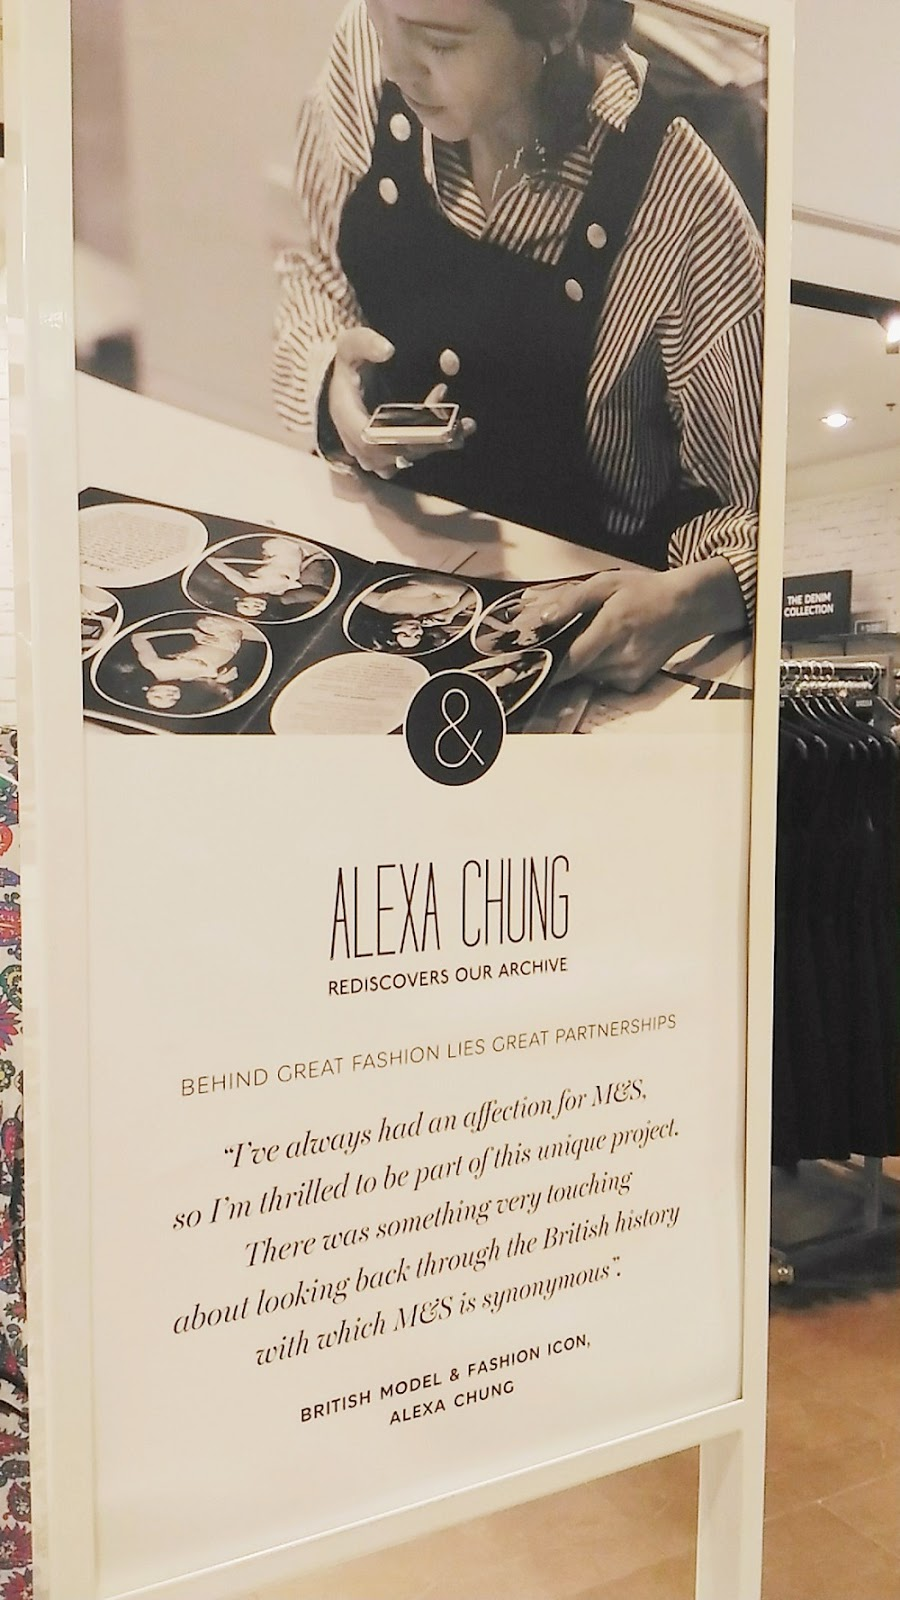 Alexa Chung for Marks & Spencer collaboration